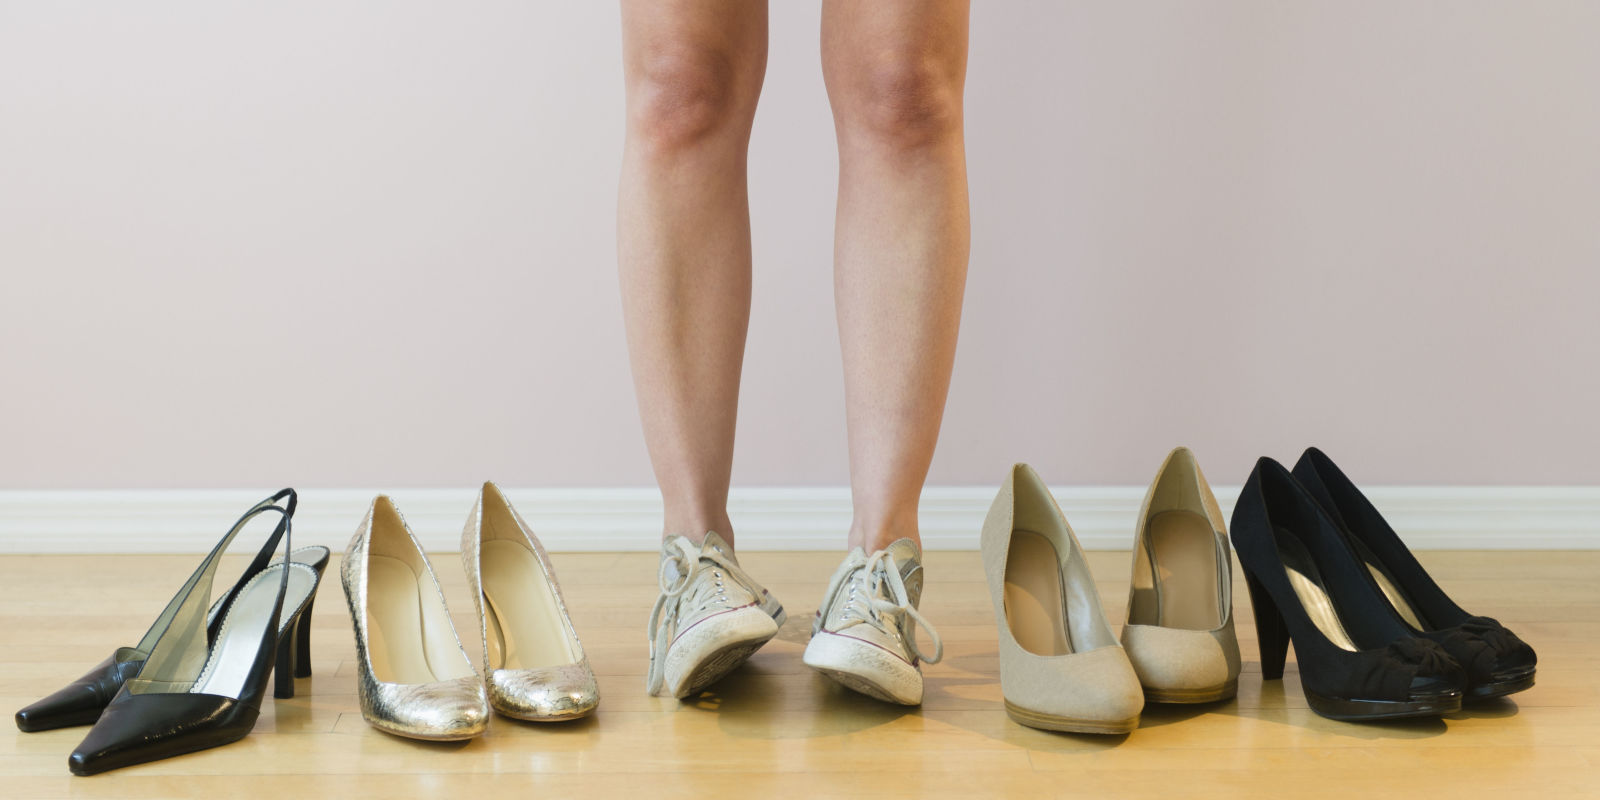 high heels essay There are plenty of women who would say that high heels just make them feel good,  first-person essays, features, interviews and q&as about life today.